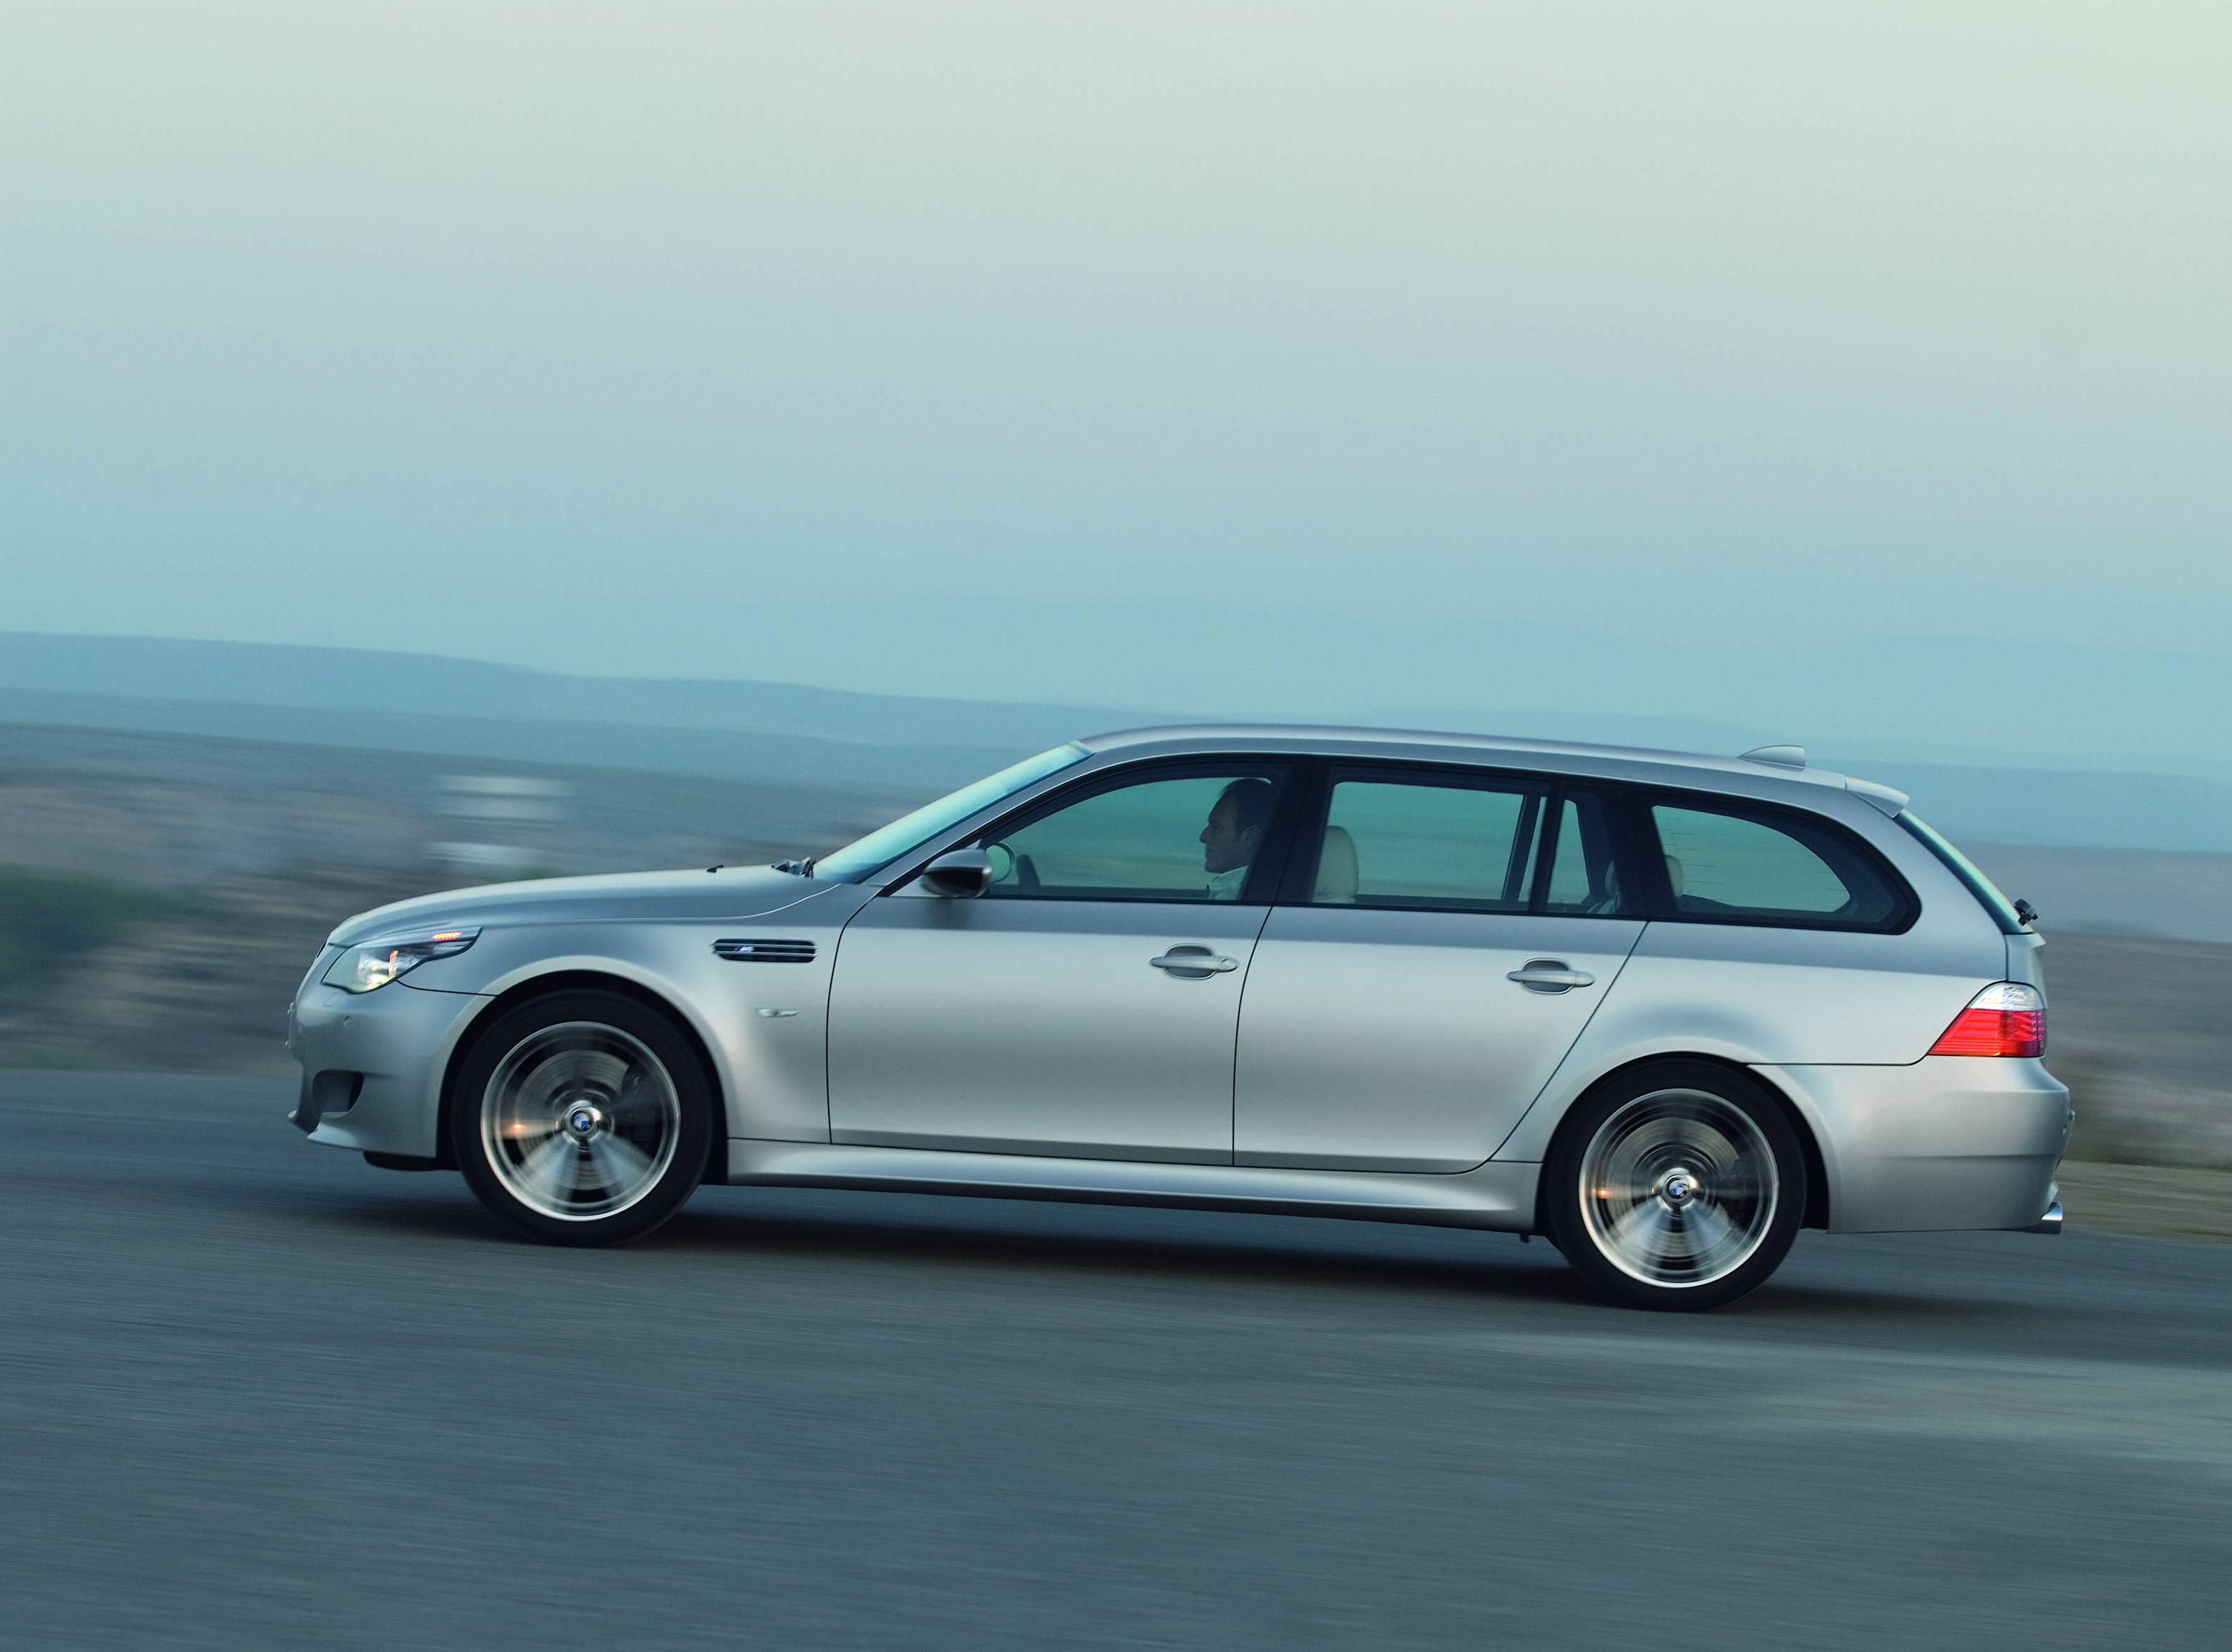 2008 BMW M5 Touring Review - Top Speed